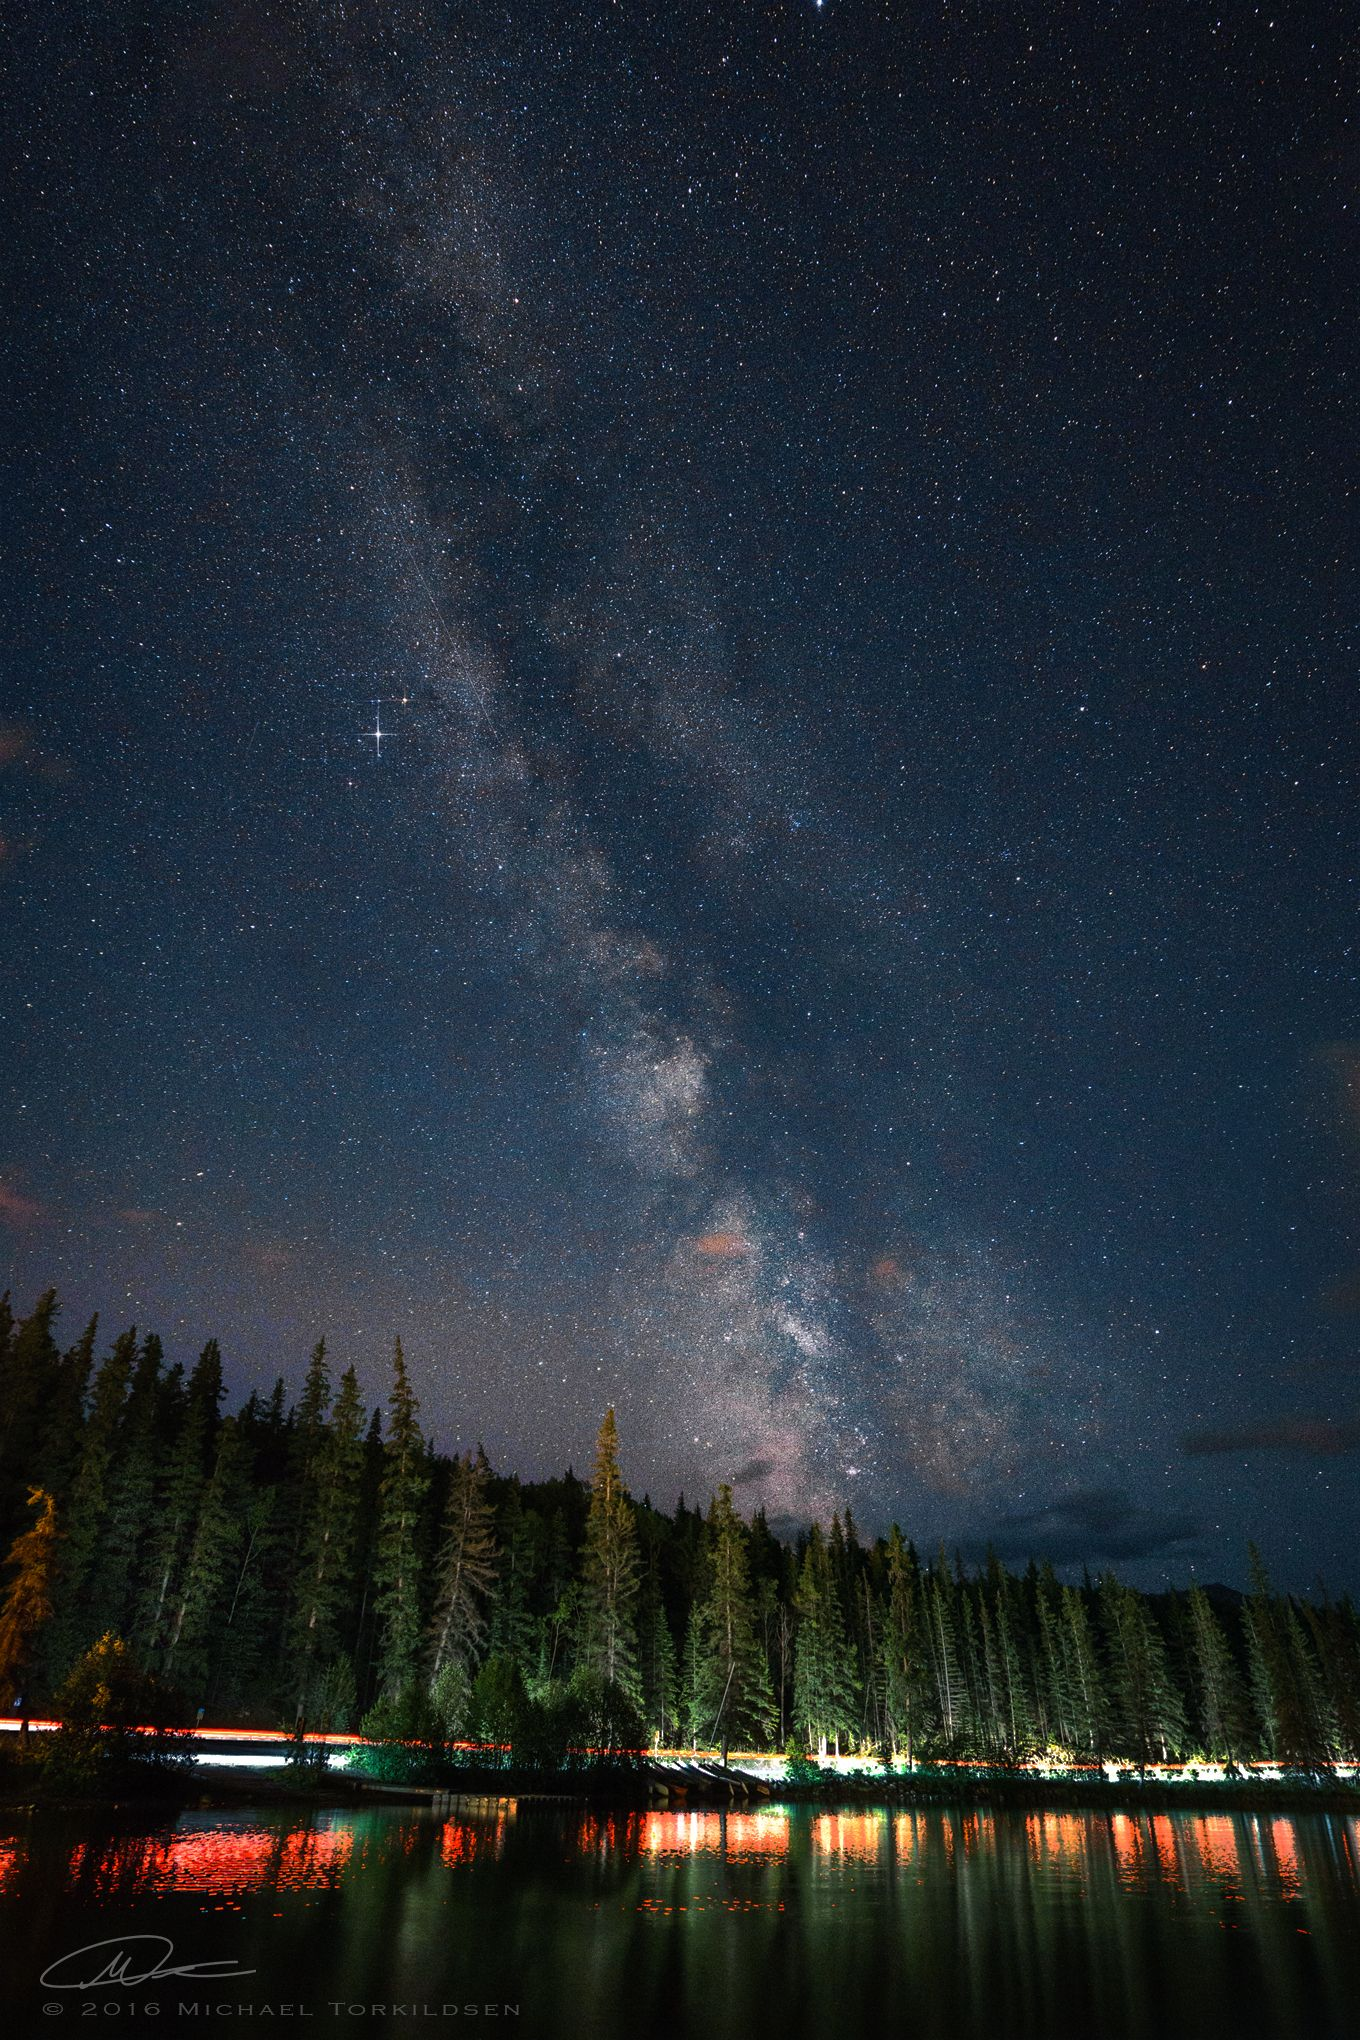 Under the Milky Way a car lights up the pine forest of Pyramid Lake Alberta Canada. [OC] [2040x1360] http://ift.tt/2enzZbR